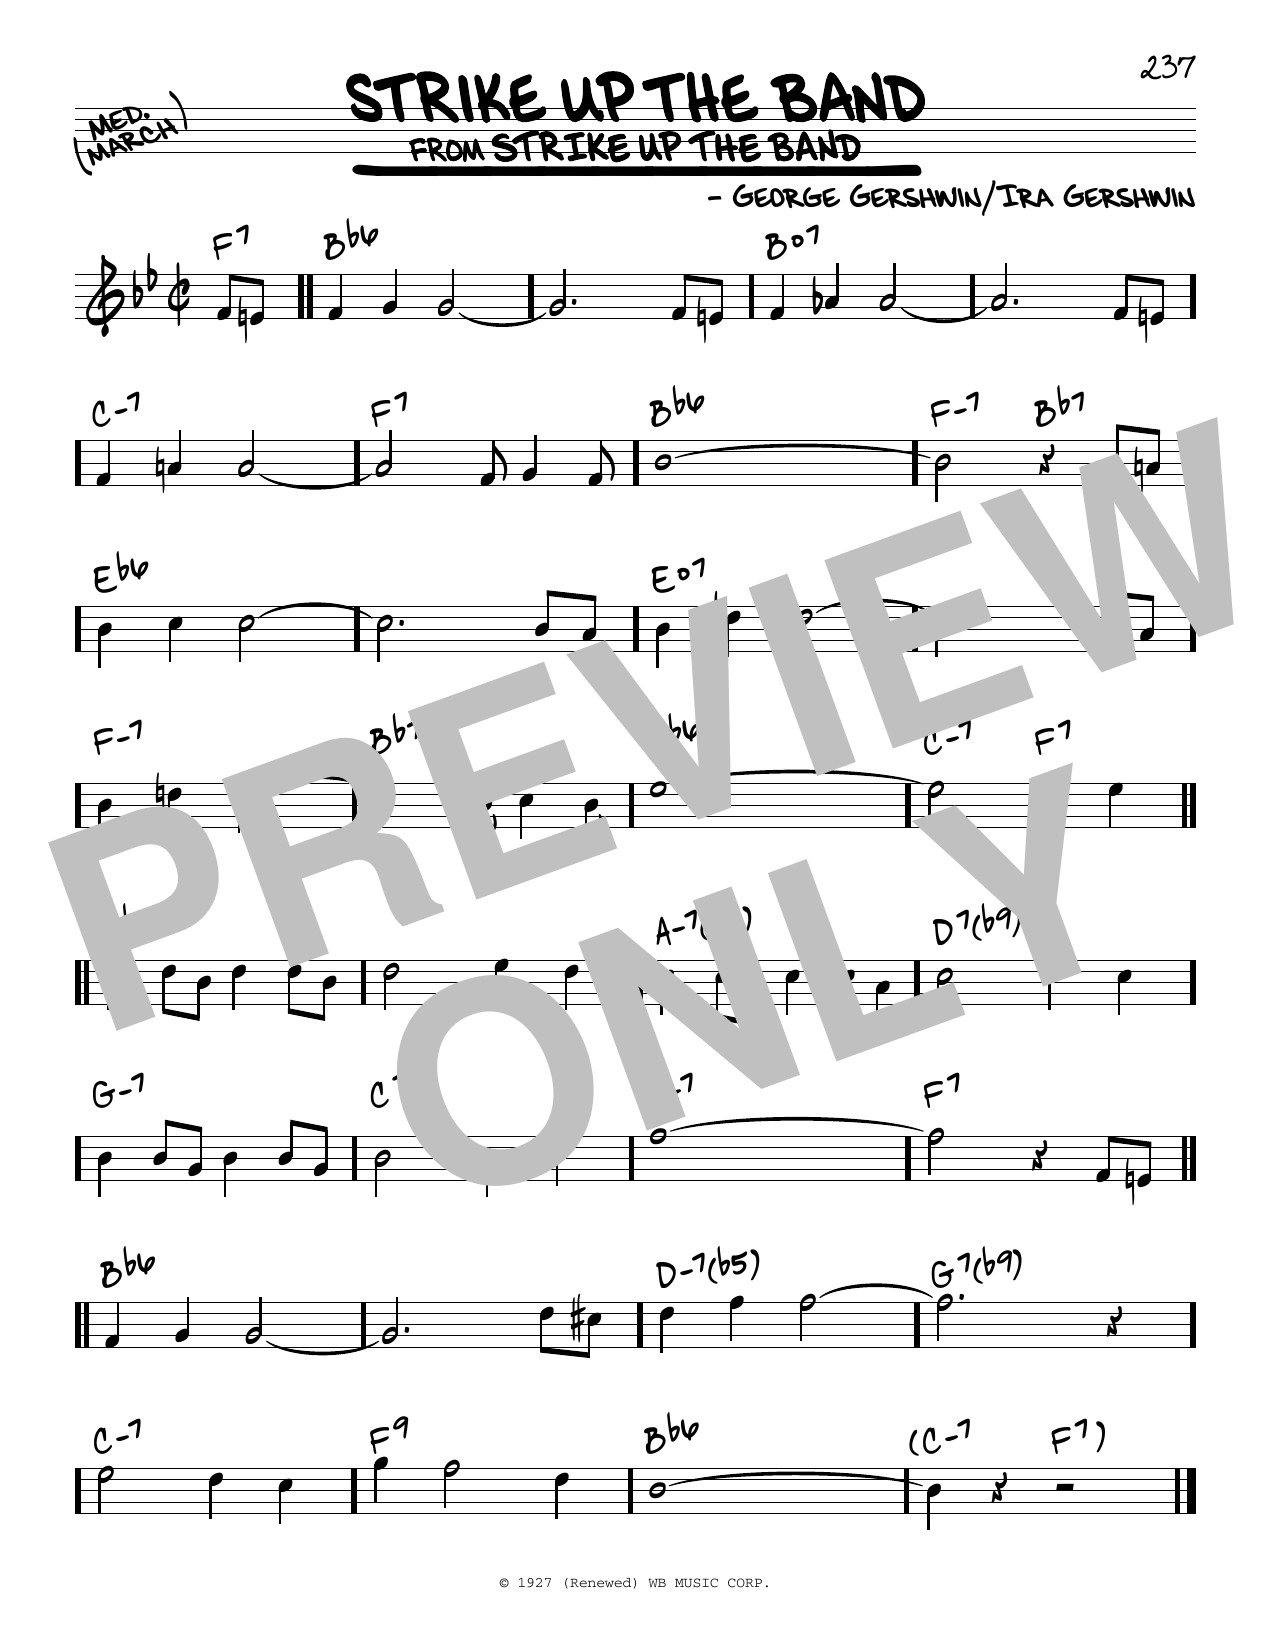 George Gershwin Strike Up The Band sheet music notes and chords. Download Printable PDF.